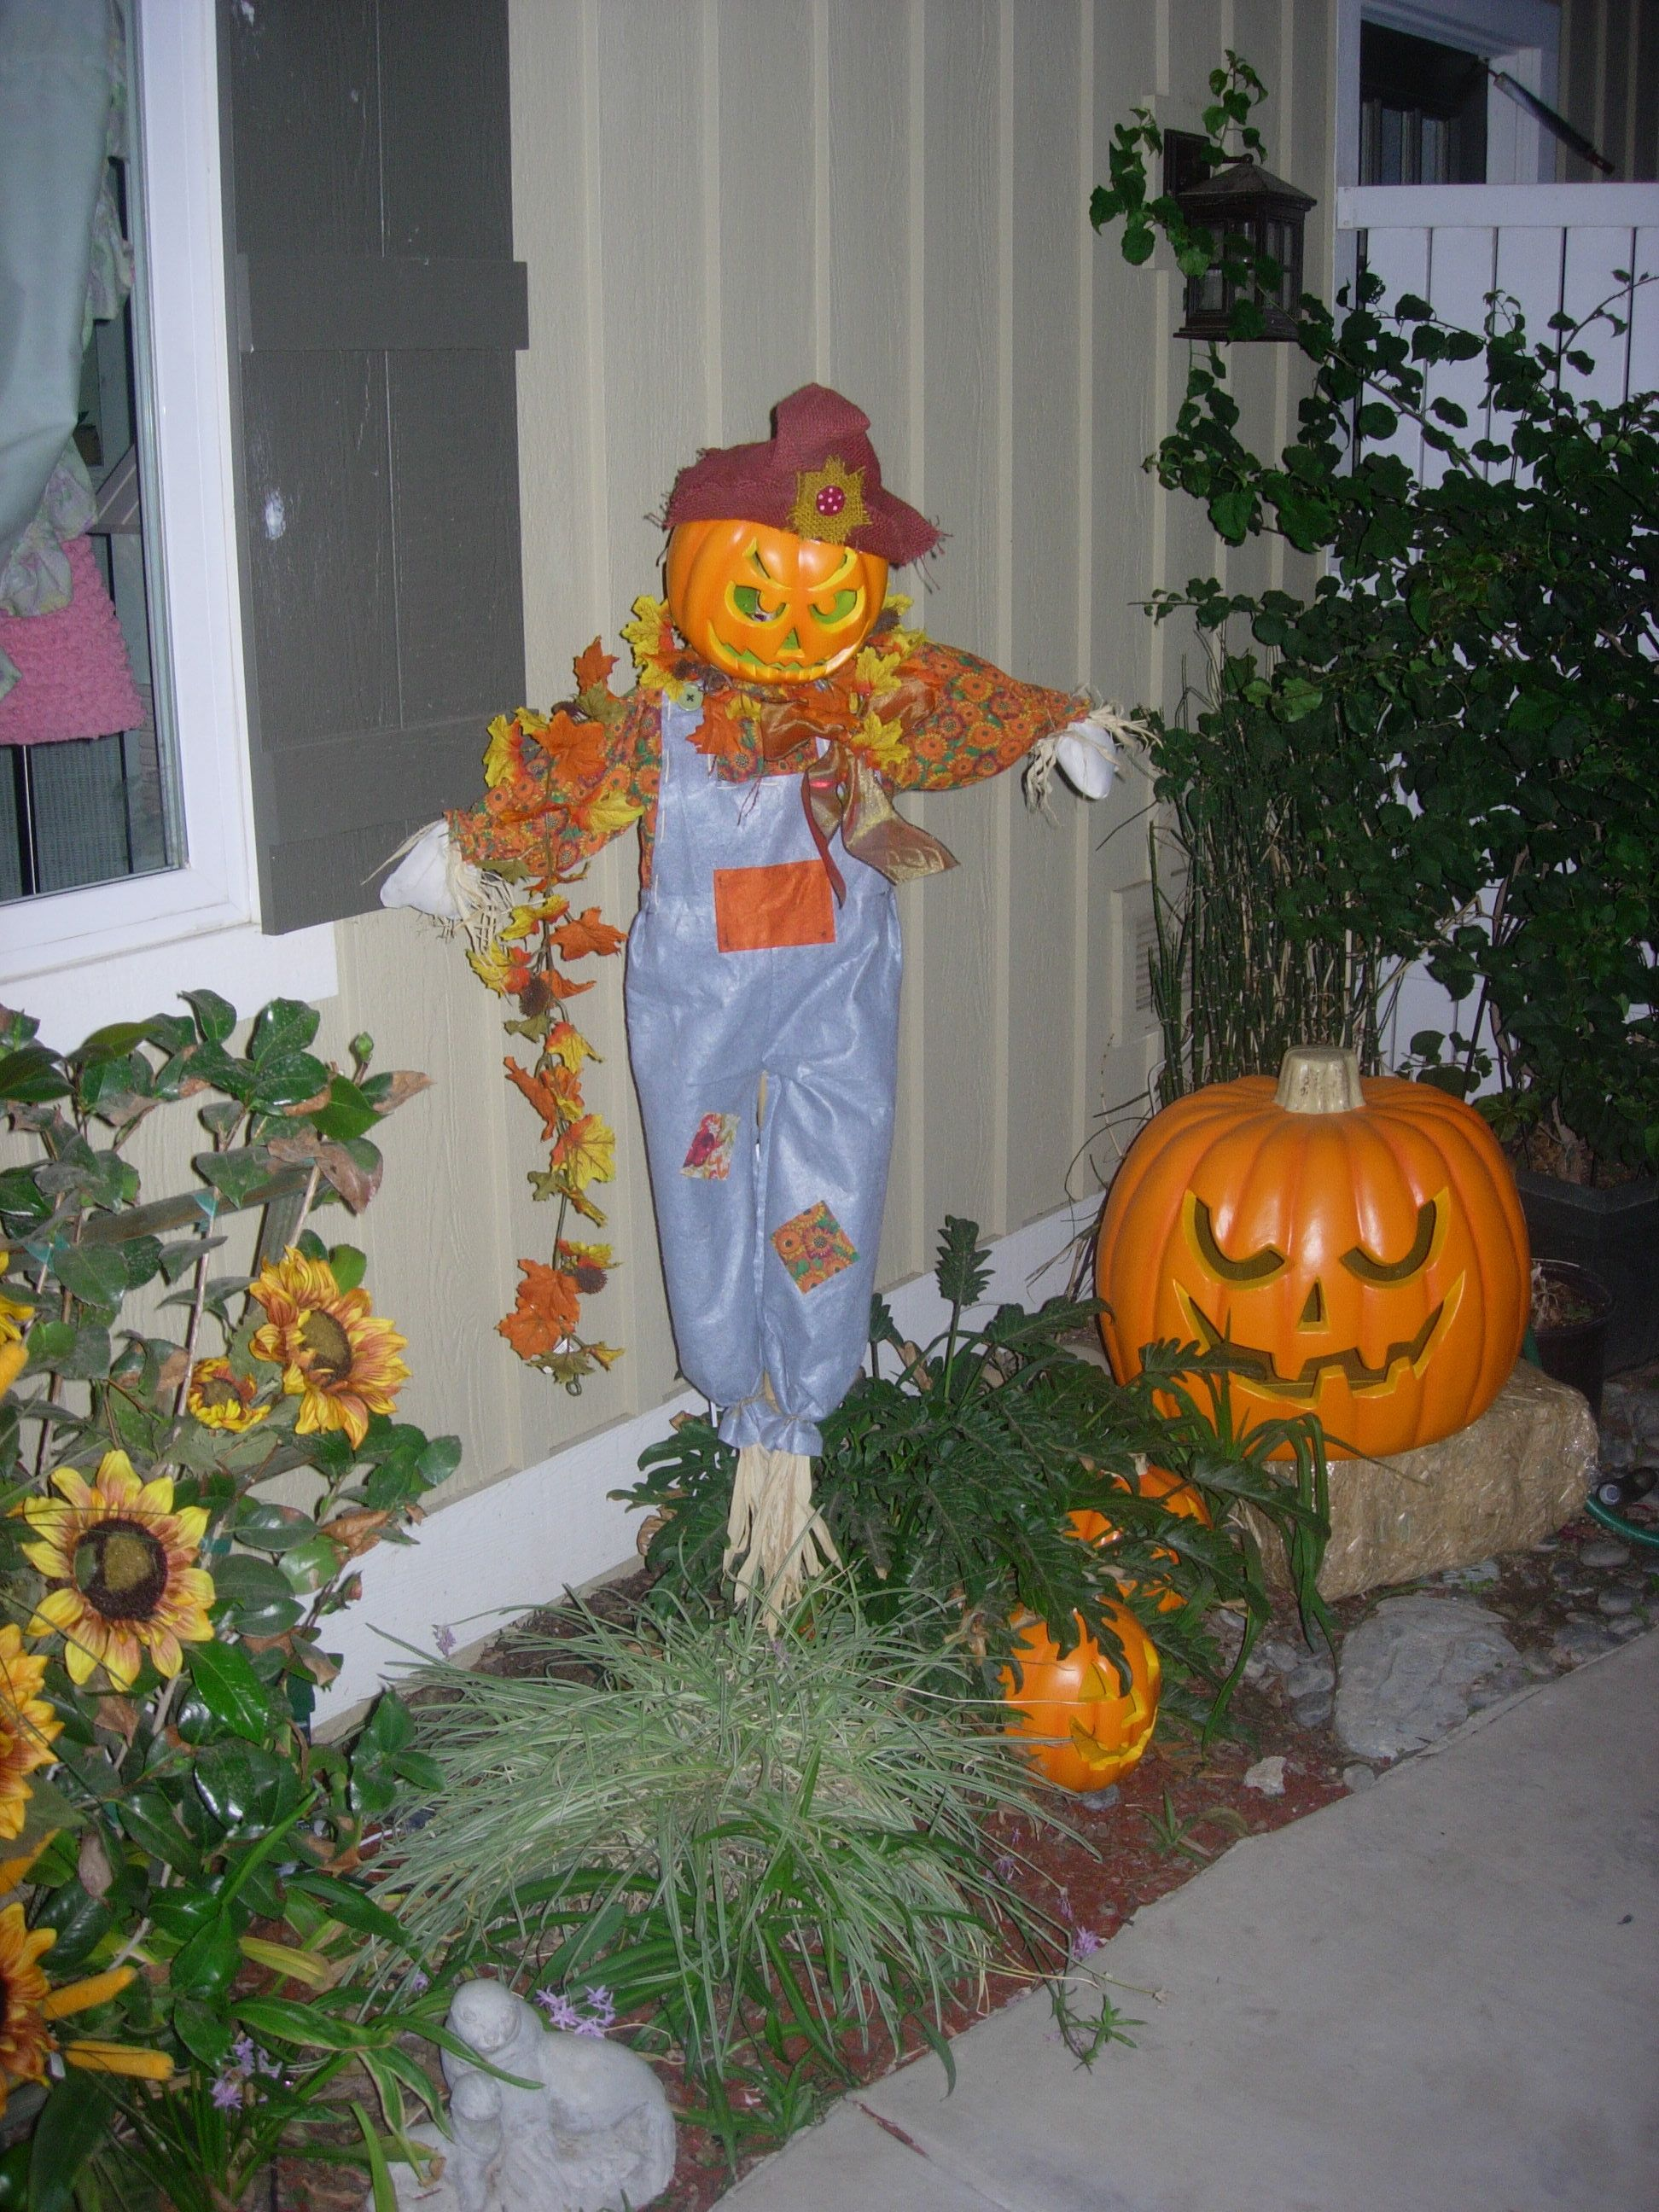 Halloween Decorations Near Me To See